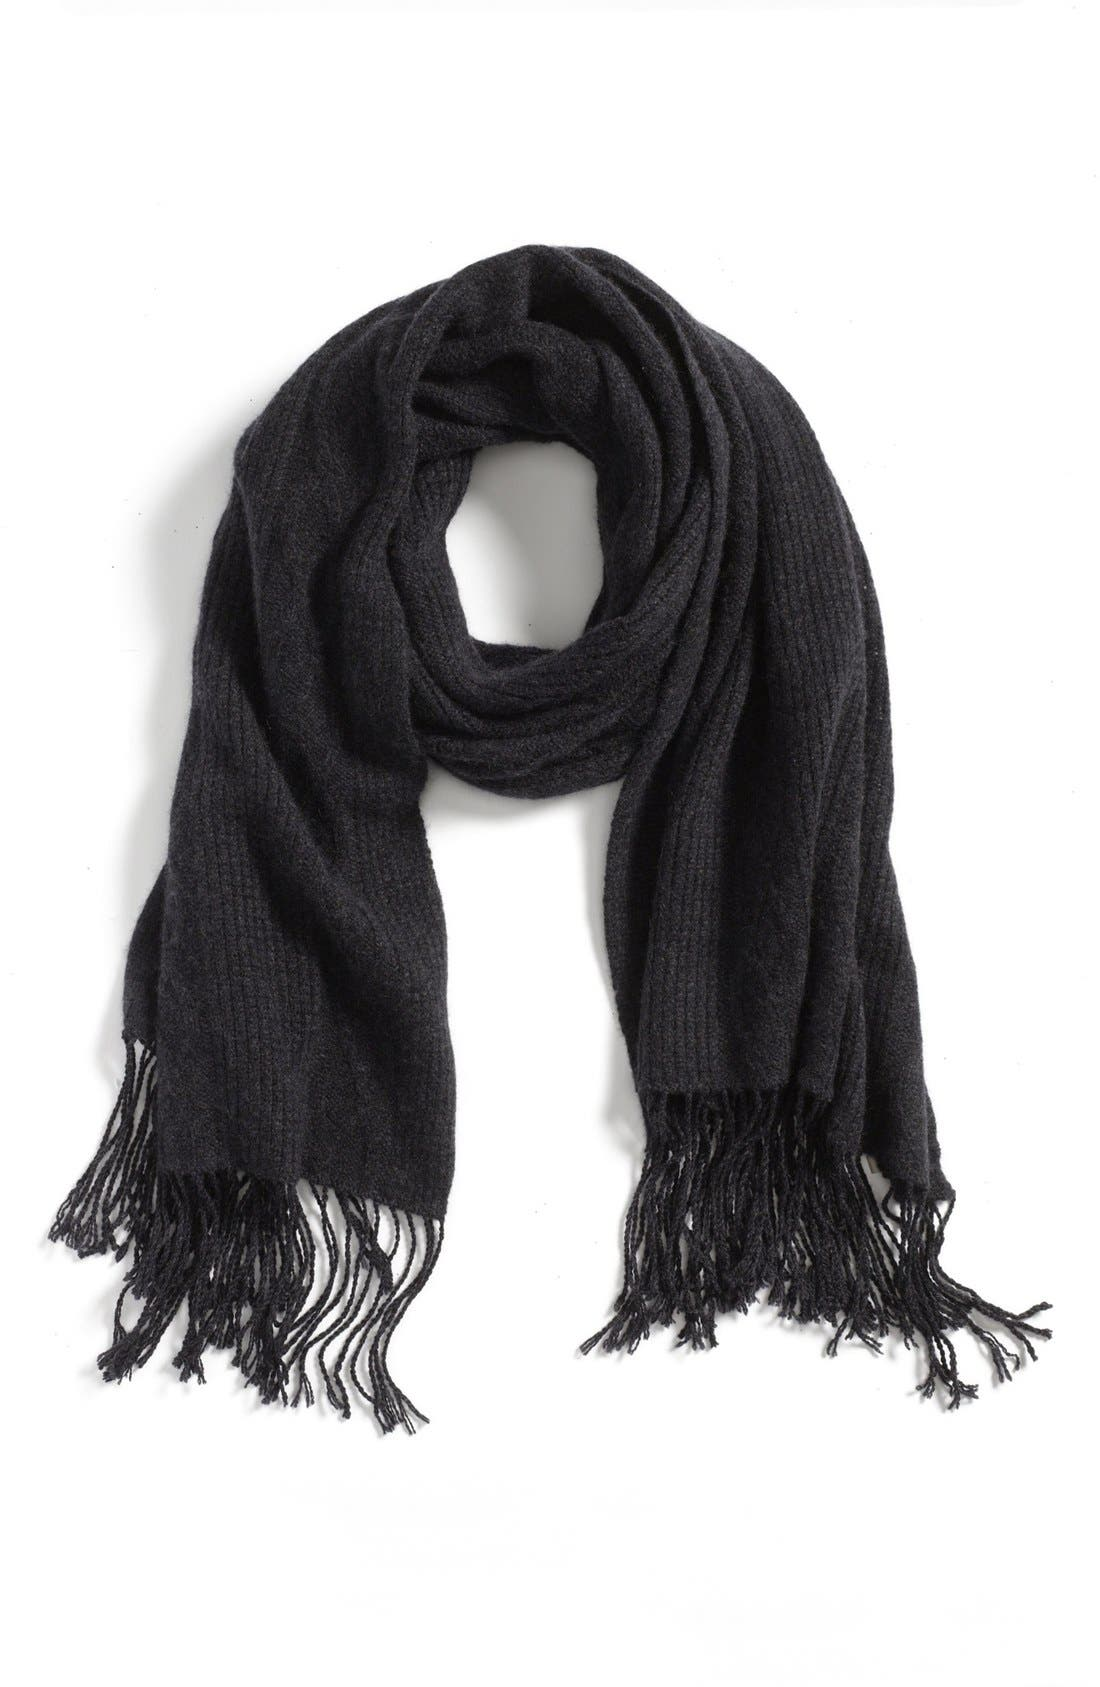 NORDSTROM 'Luxe' Cable Knit Cashmere Scarf, Main, color, 001